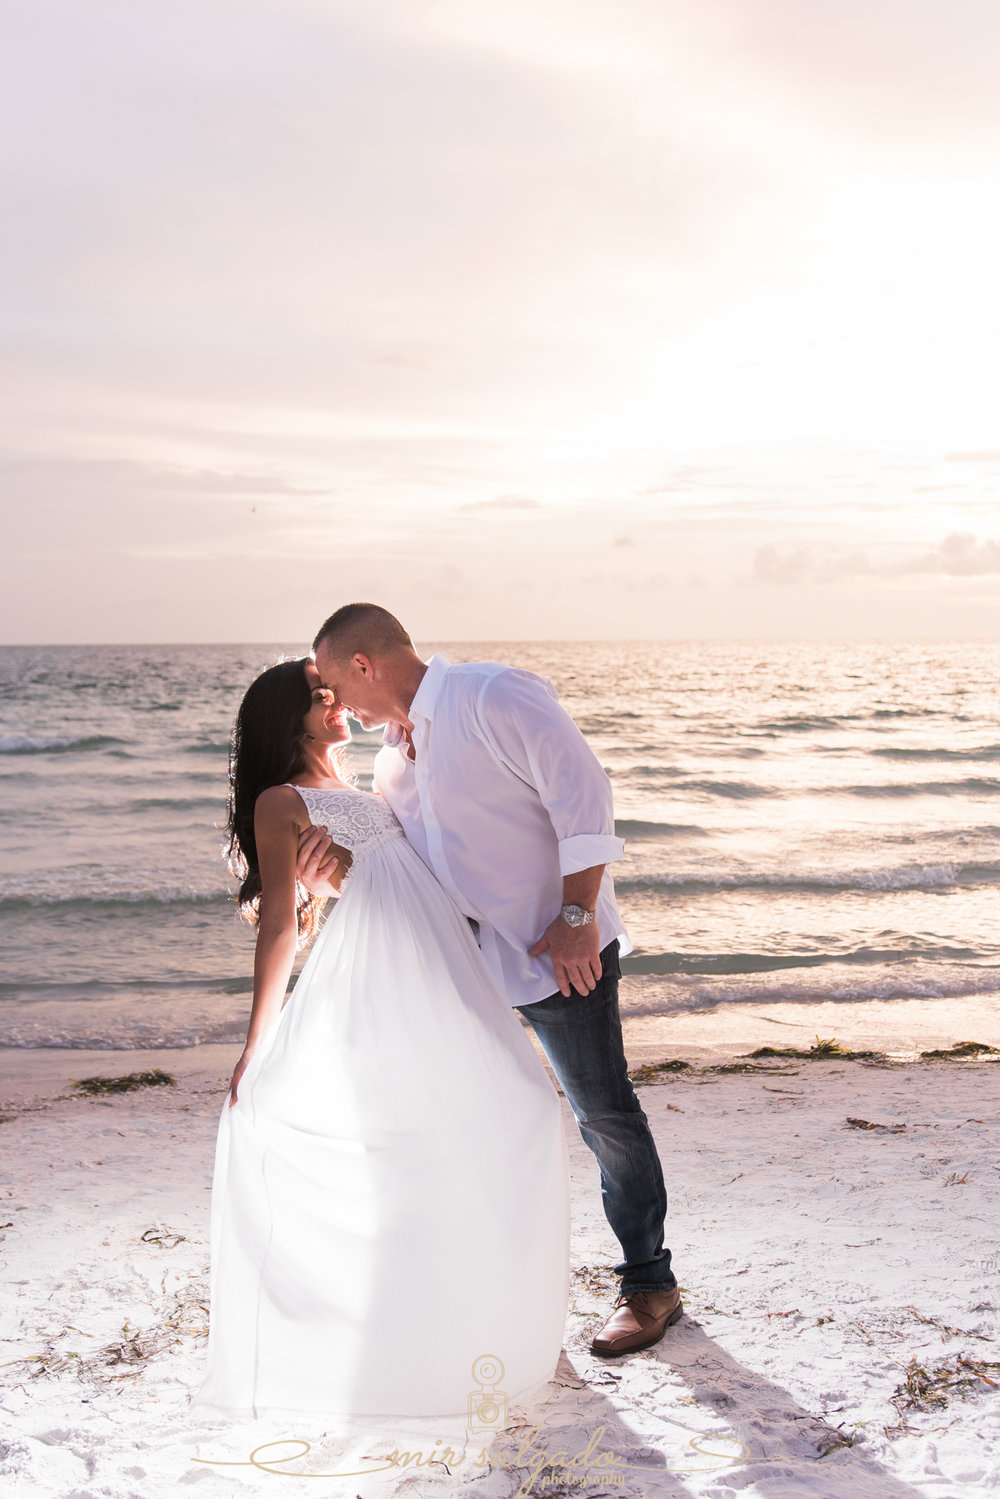 sunset-pass-a-grille-beach-engagement, tampa-sunset-beach-pictures, tampa-wedding-photographer